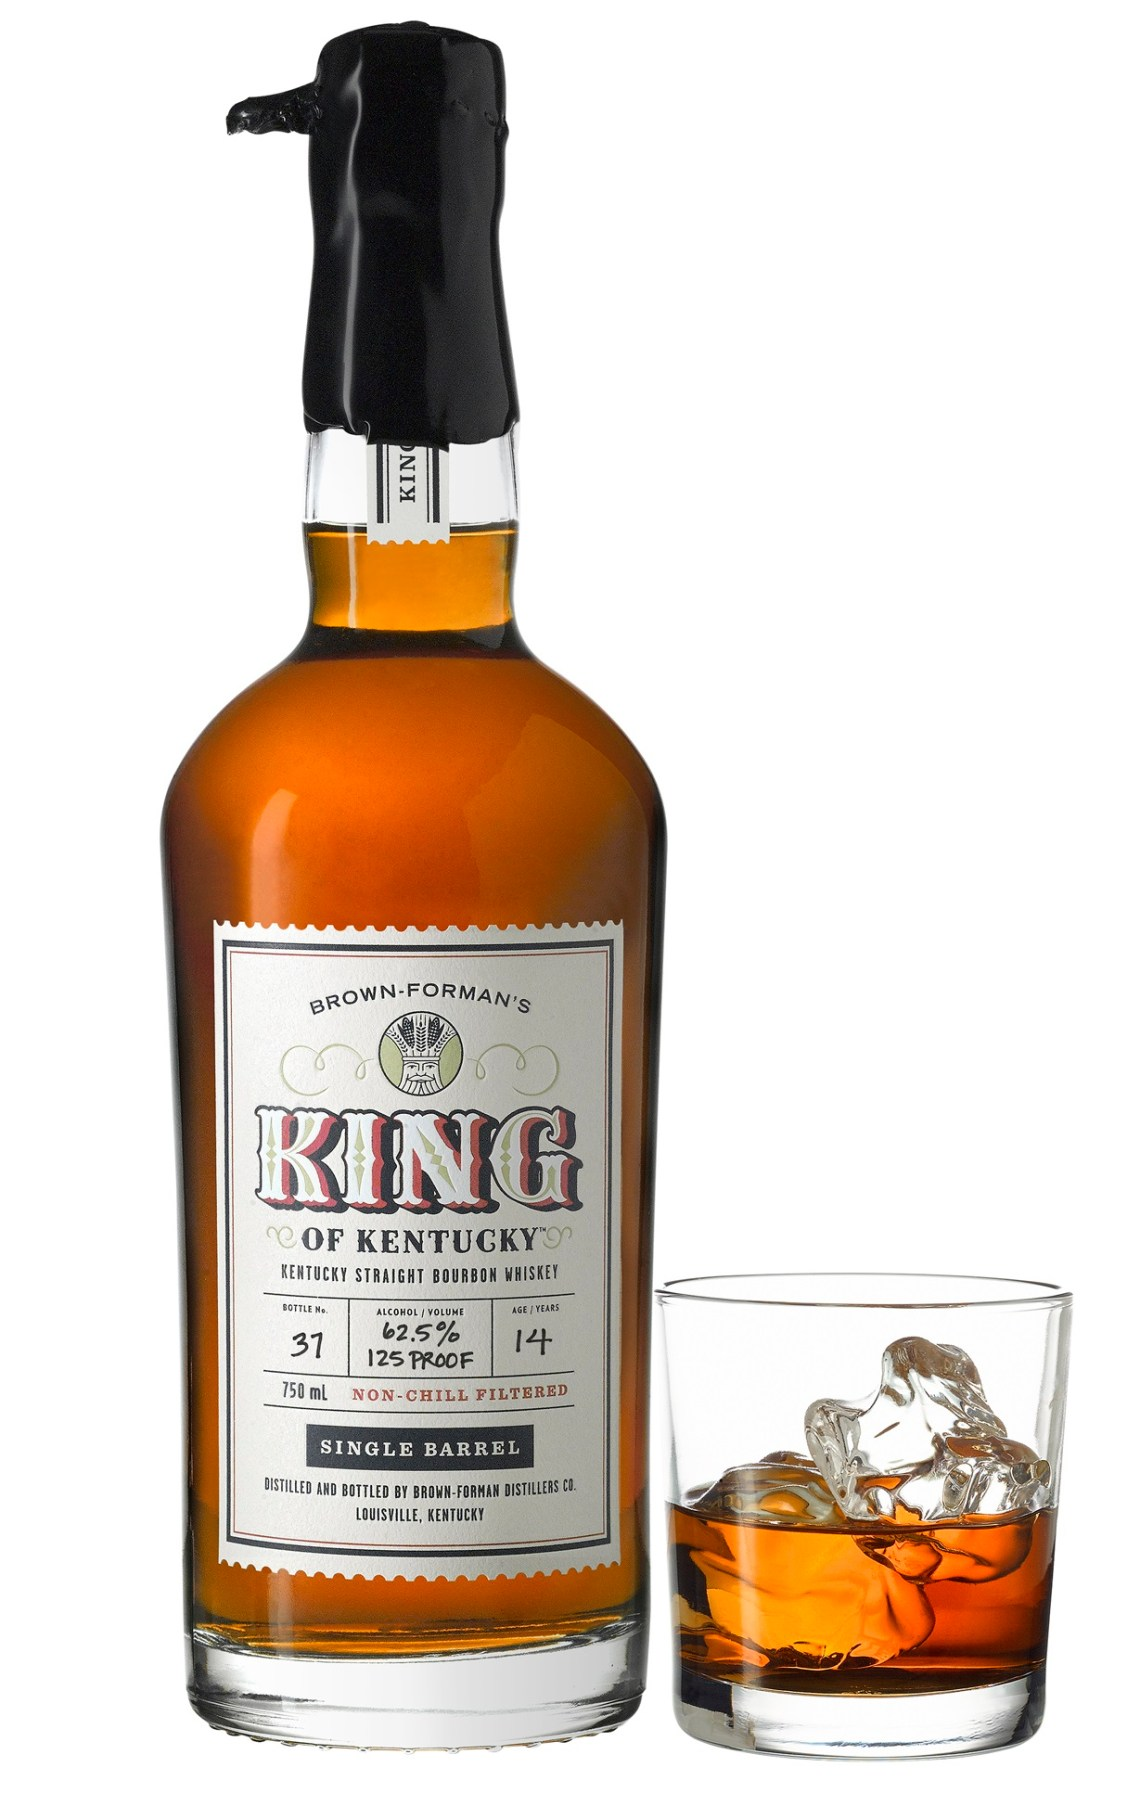 King of Kentucky Straight Bourbon 14 Years Old (2018)